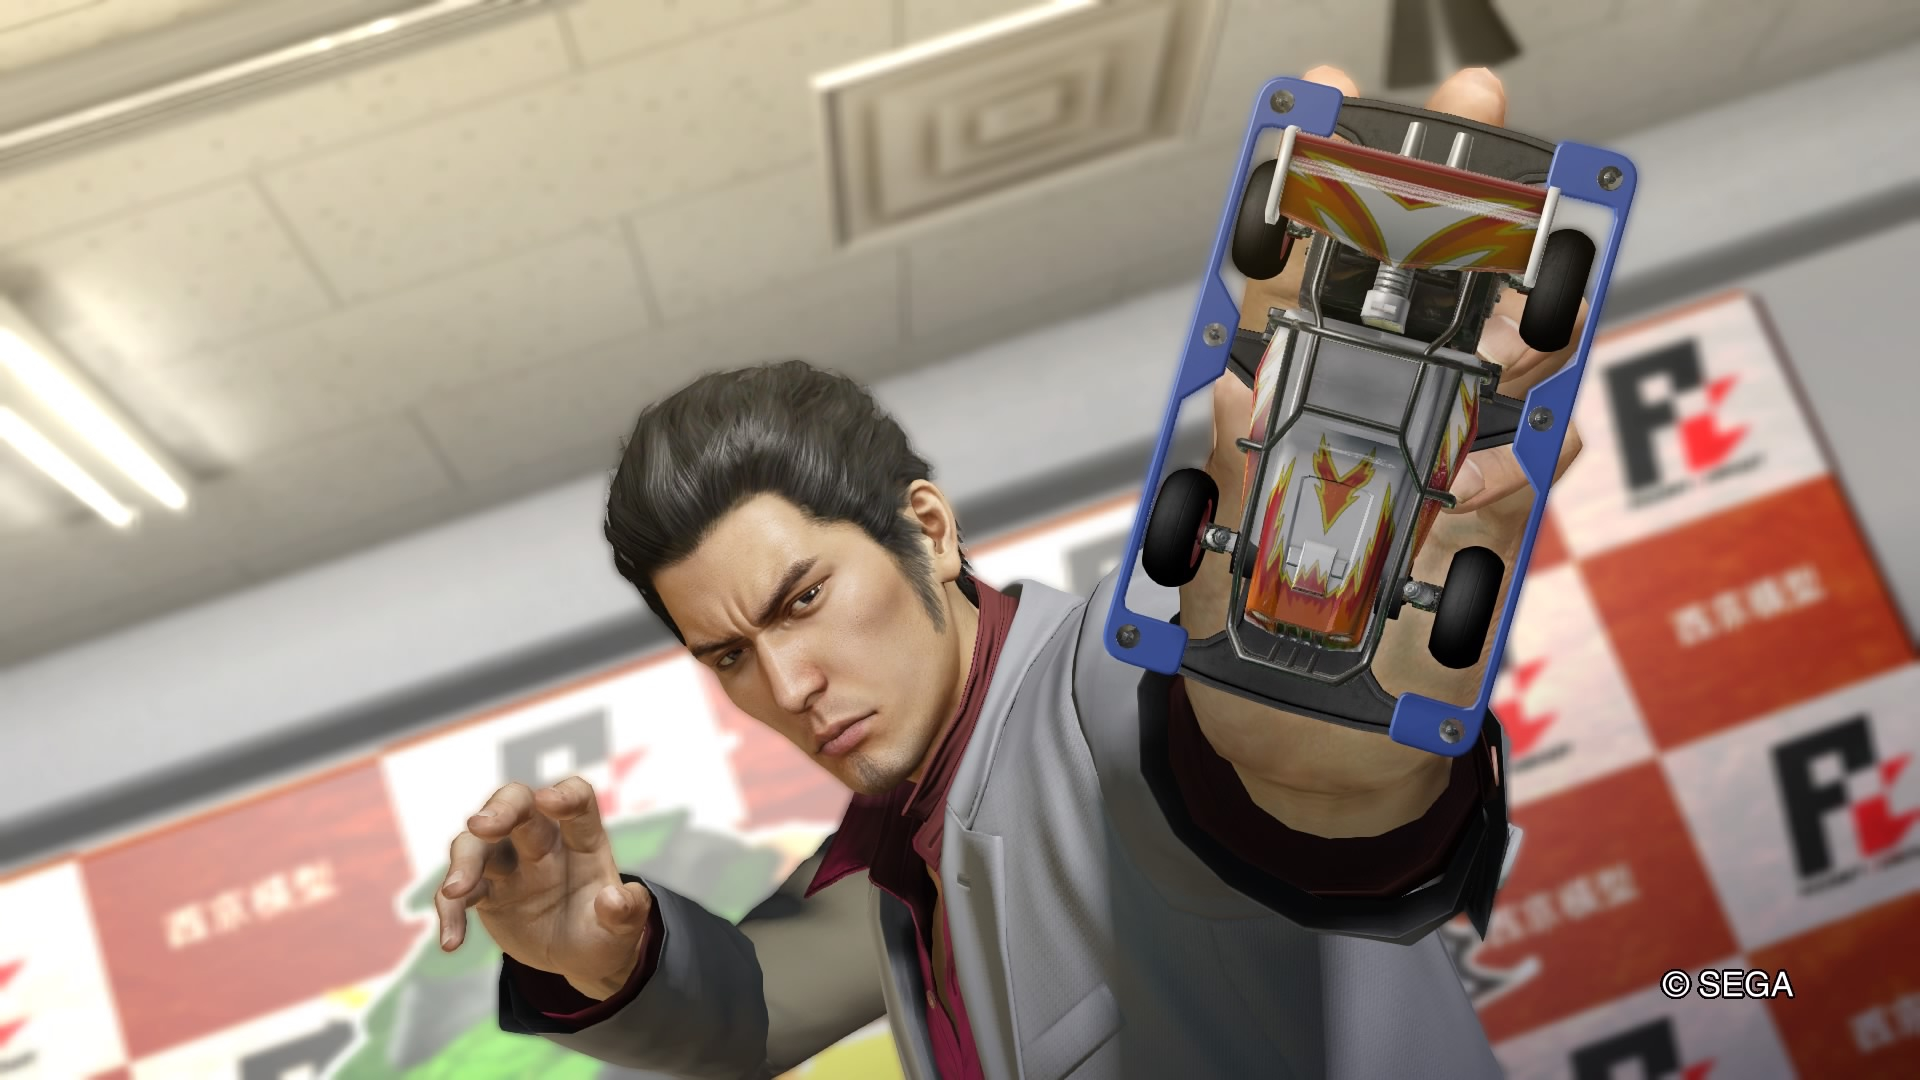 Yakuza 6 heads west with March 2018 release date